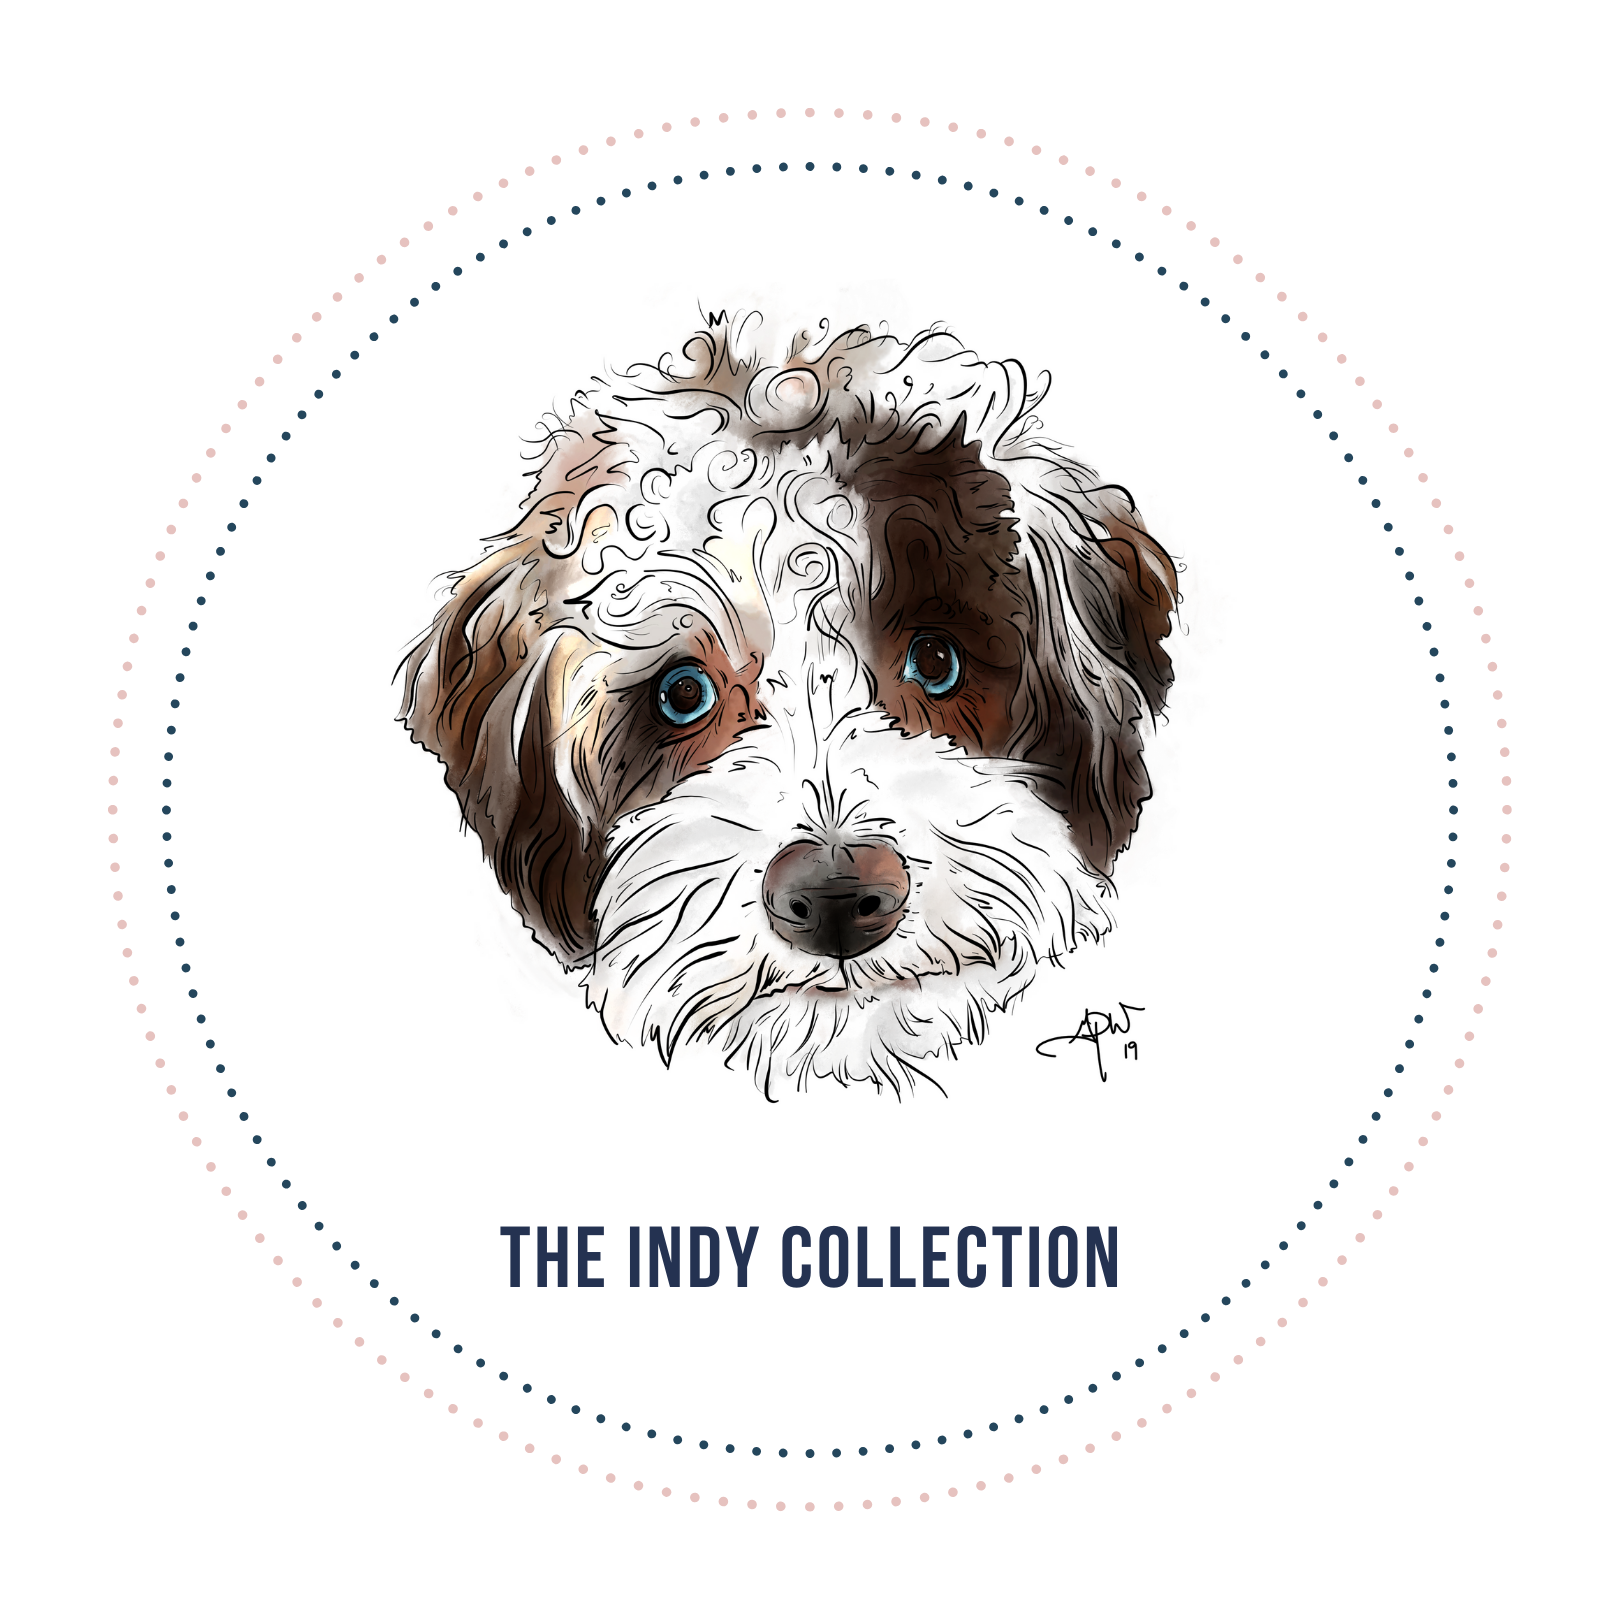 The Indy Collection